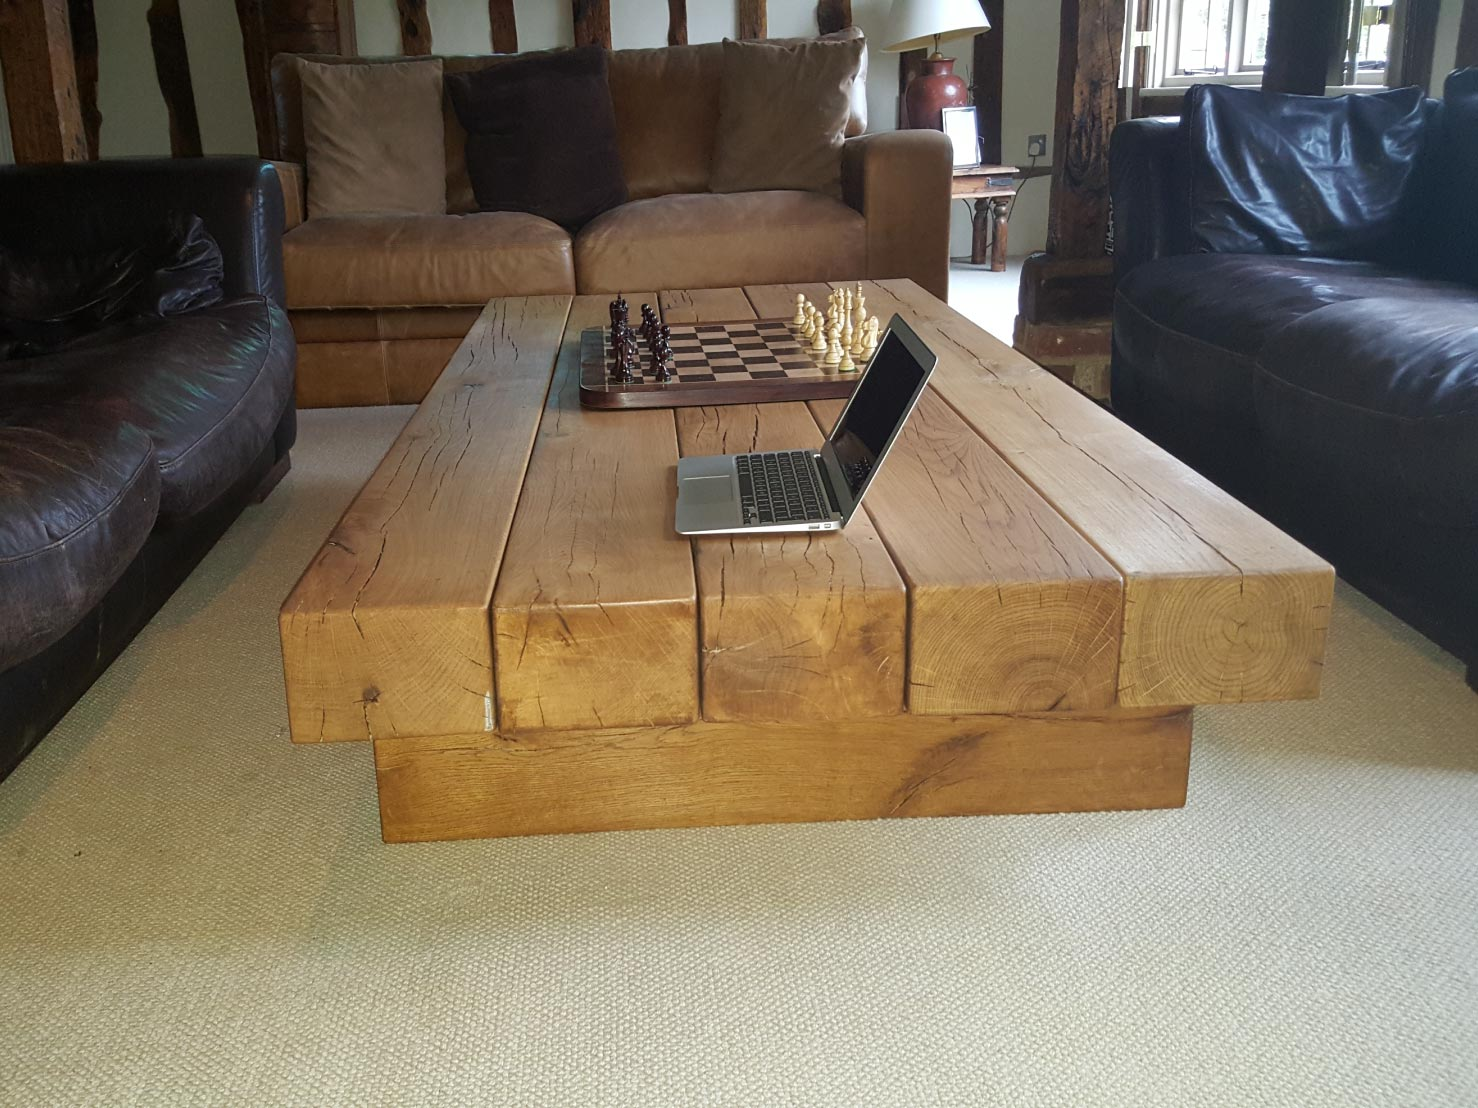 rustic-coffee-table-from-abacus-tables-arabica-2m-x-1.1m-oak-beam-project-334